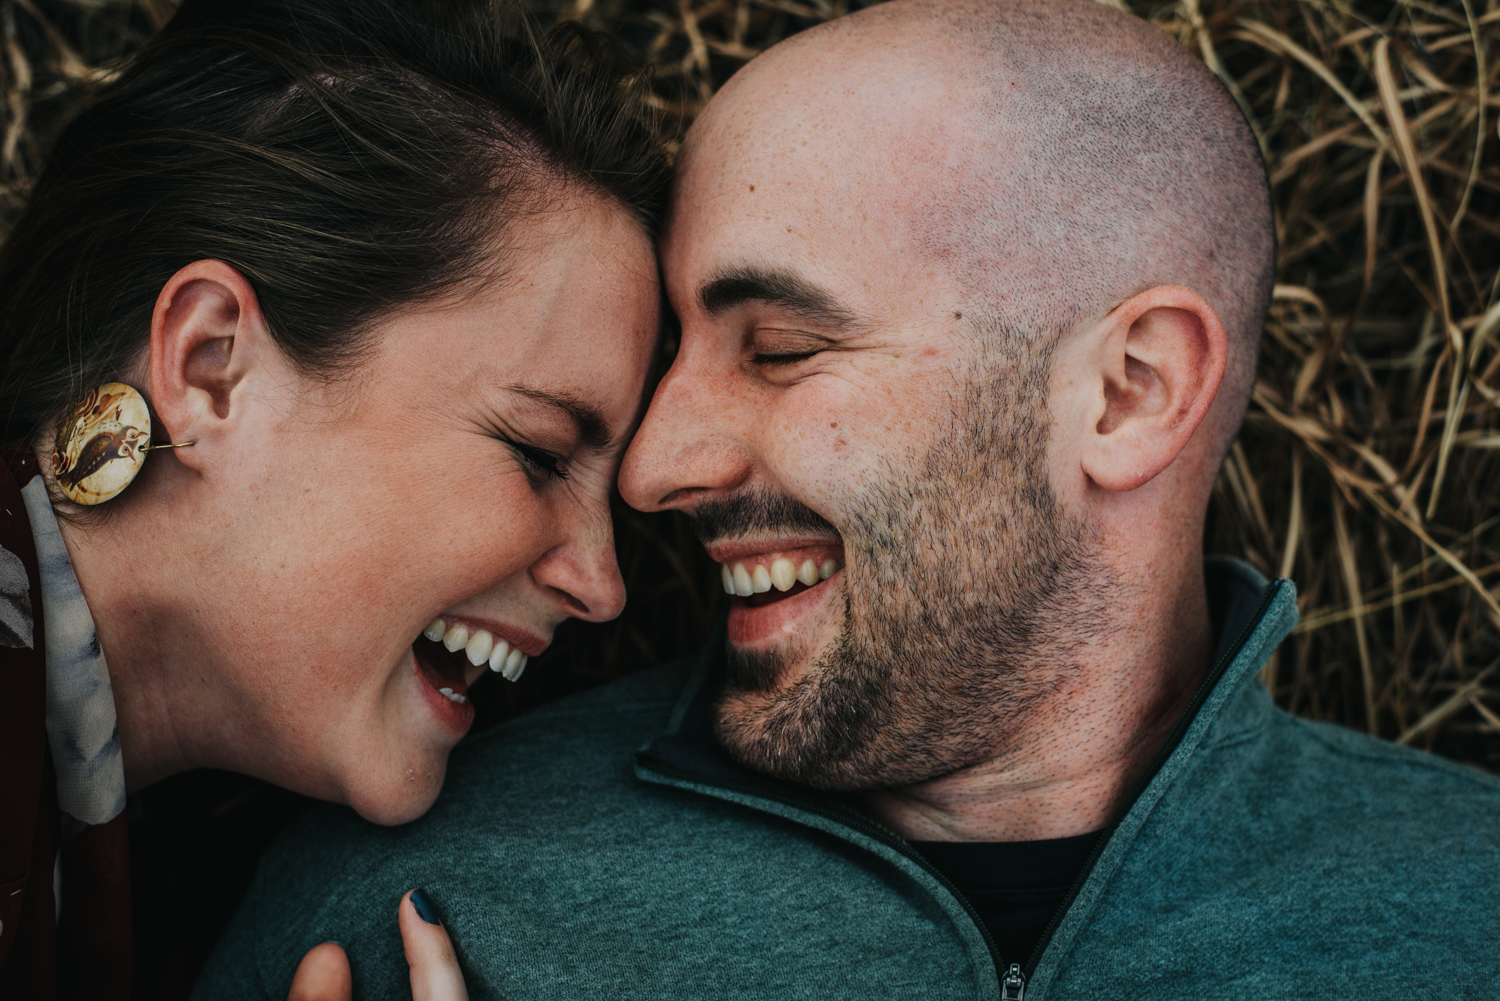 Couple laughing during snuggle engagement session in Colorado Springs mountains.